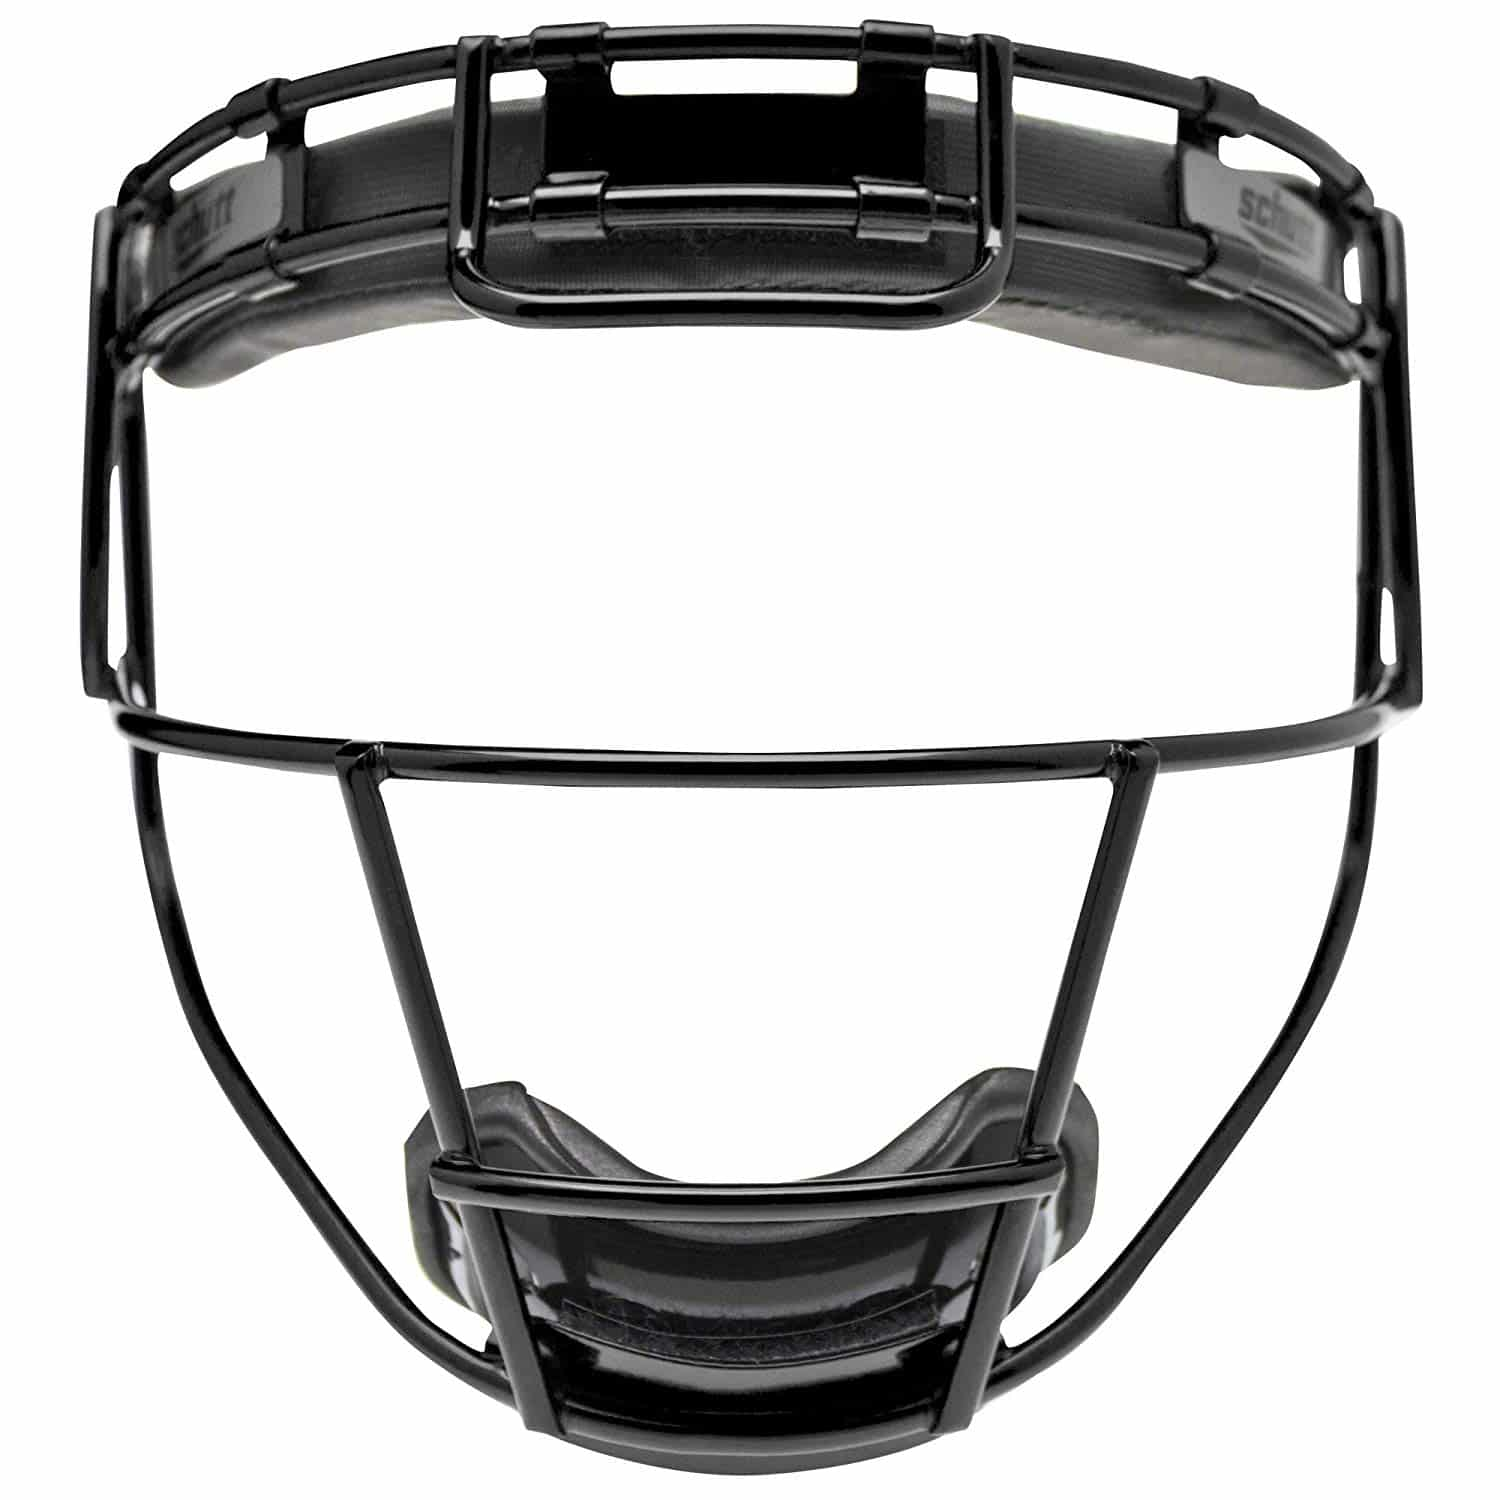 Schutt Sports Softball Guard